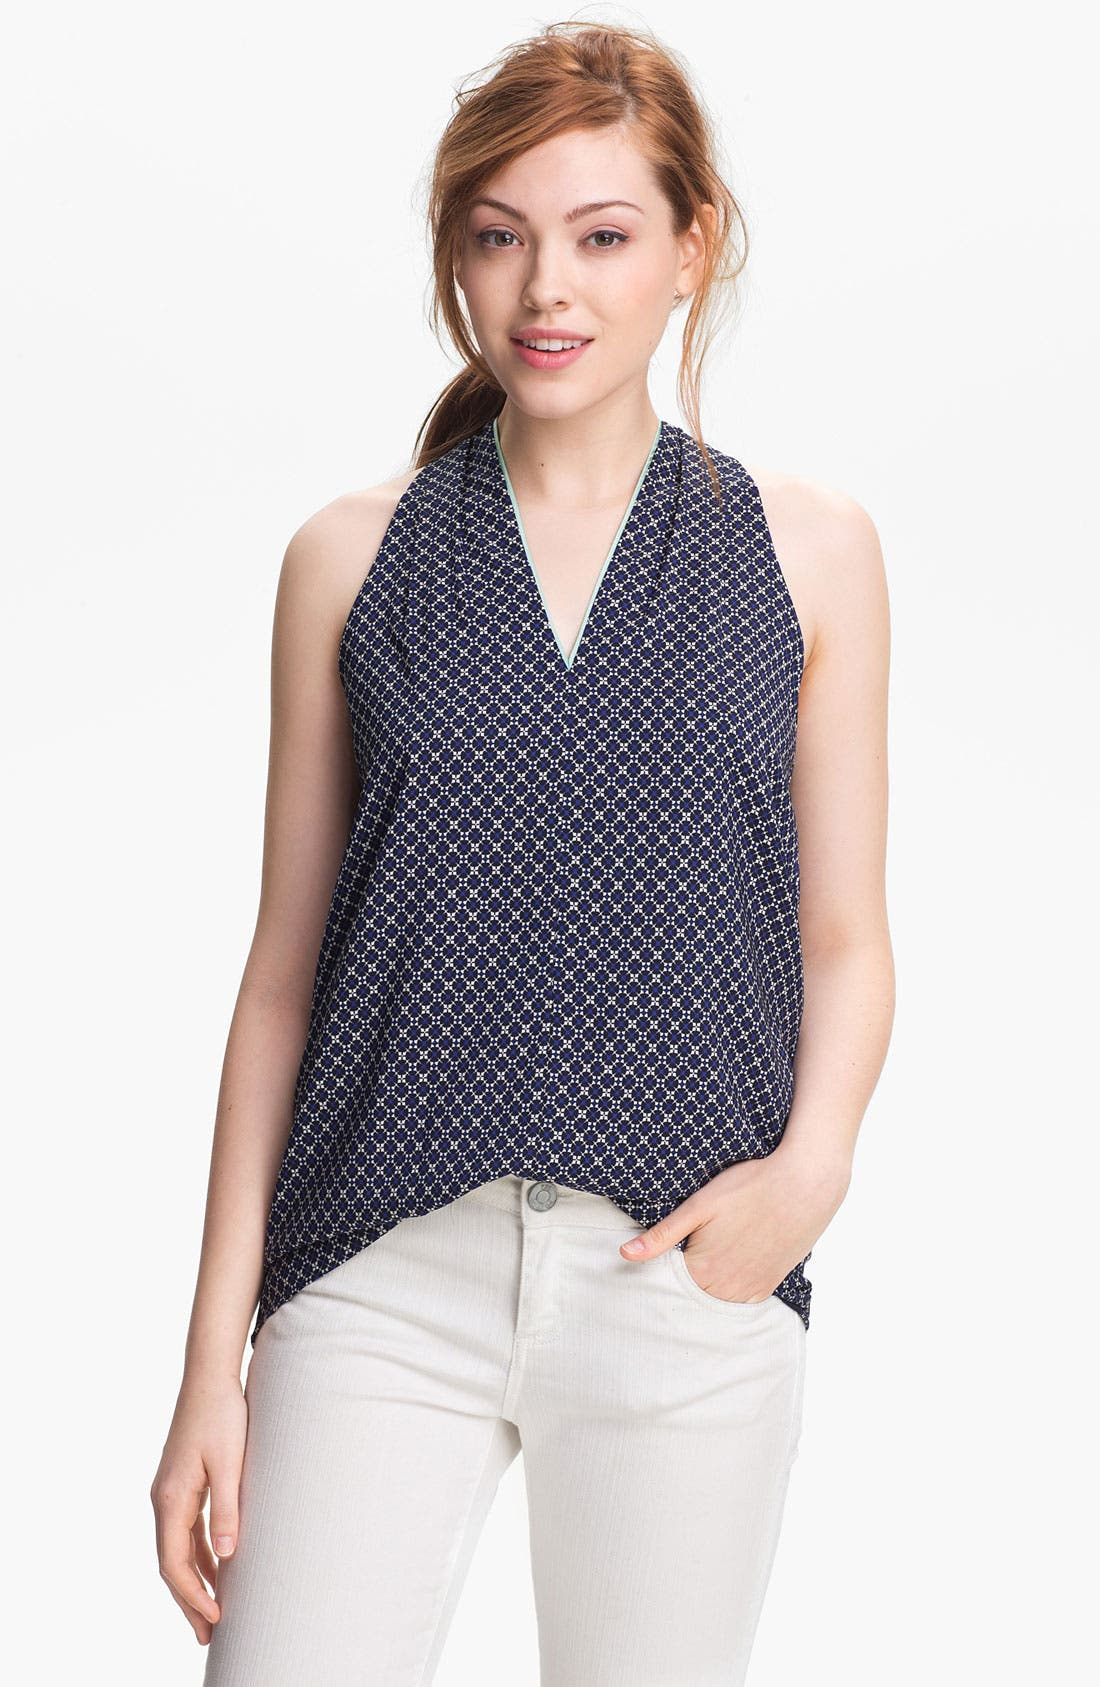 Main Image - Vince Camuto 'Geo Floral' Sleeveless Blouse